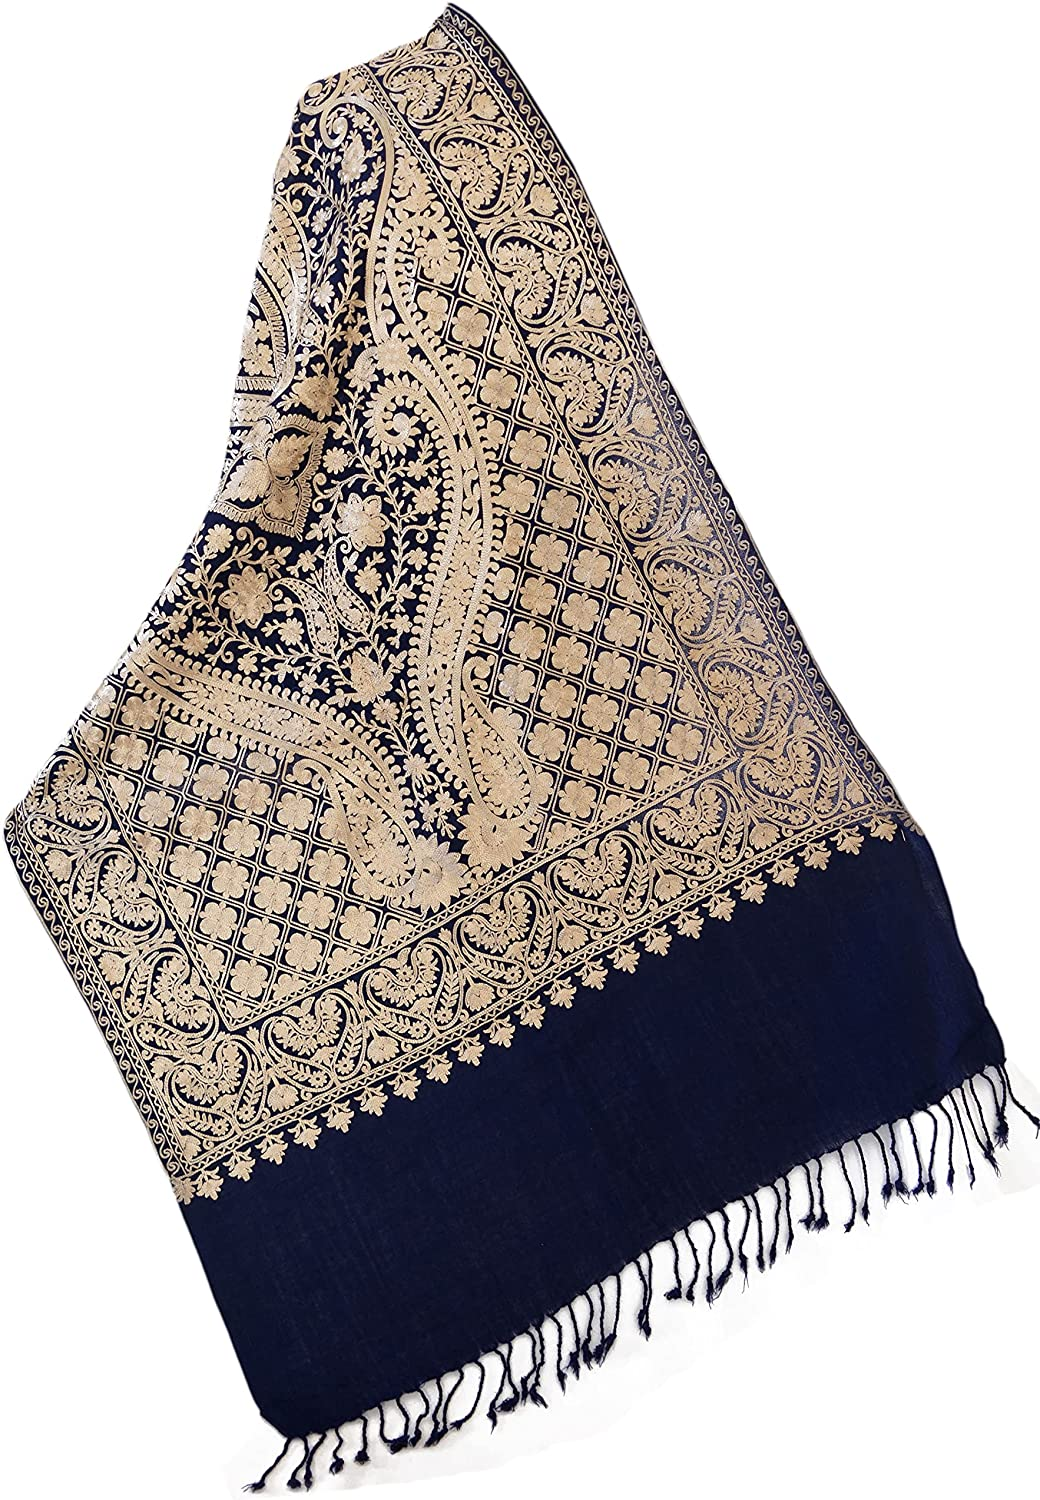 Dense Crewel Ari Embroidery Gold on Navy Wool Shawl in Floral Pashmina 80